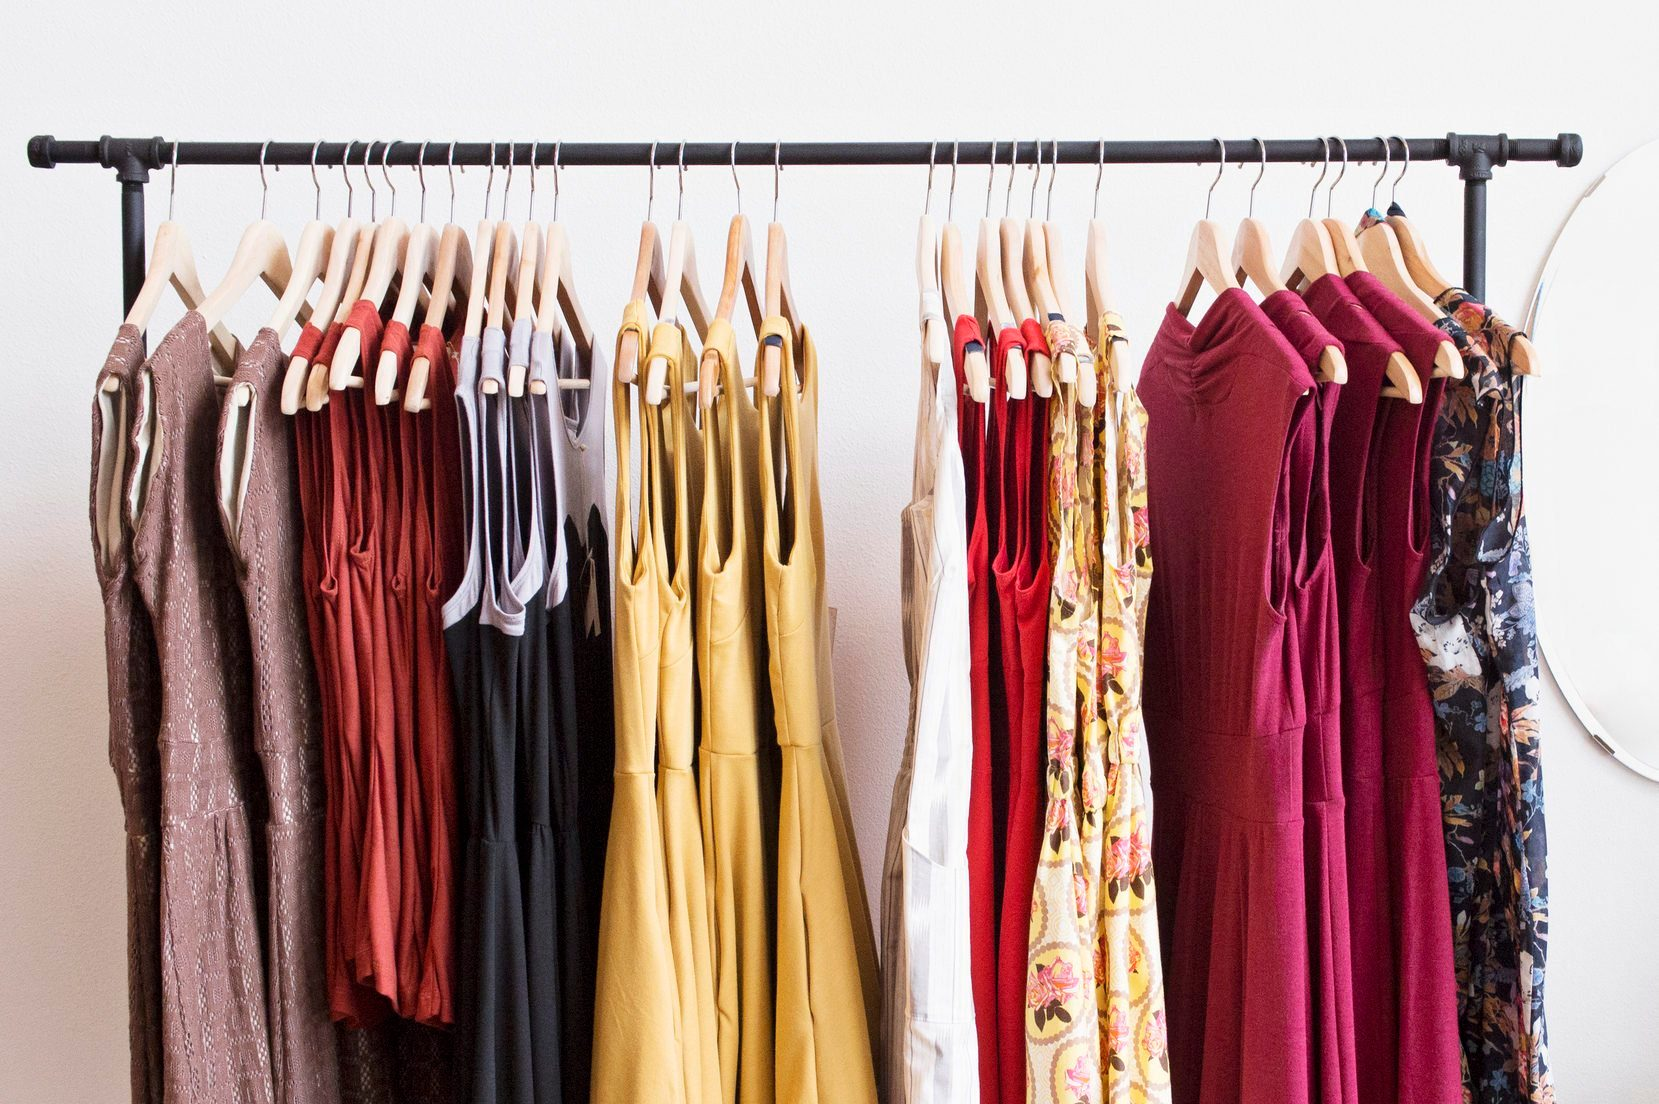 Rack of dresses in boutique